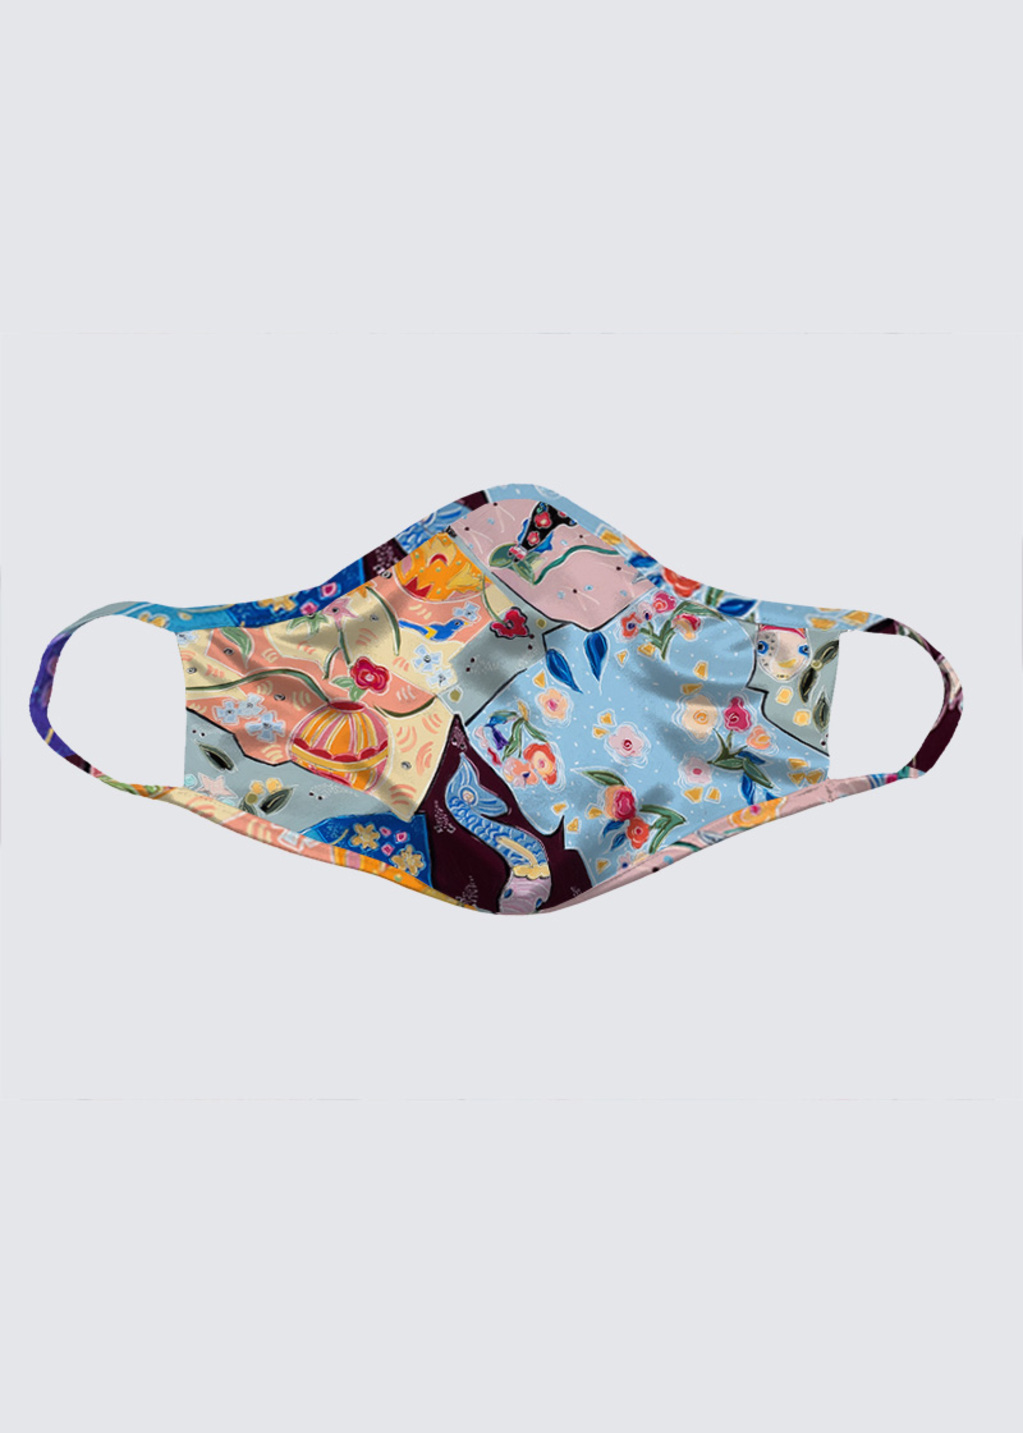 Picture of Lost in the Dream of the Floating World Reusable Face Mask (pack of 2)